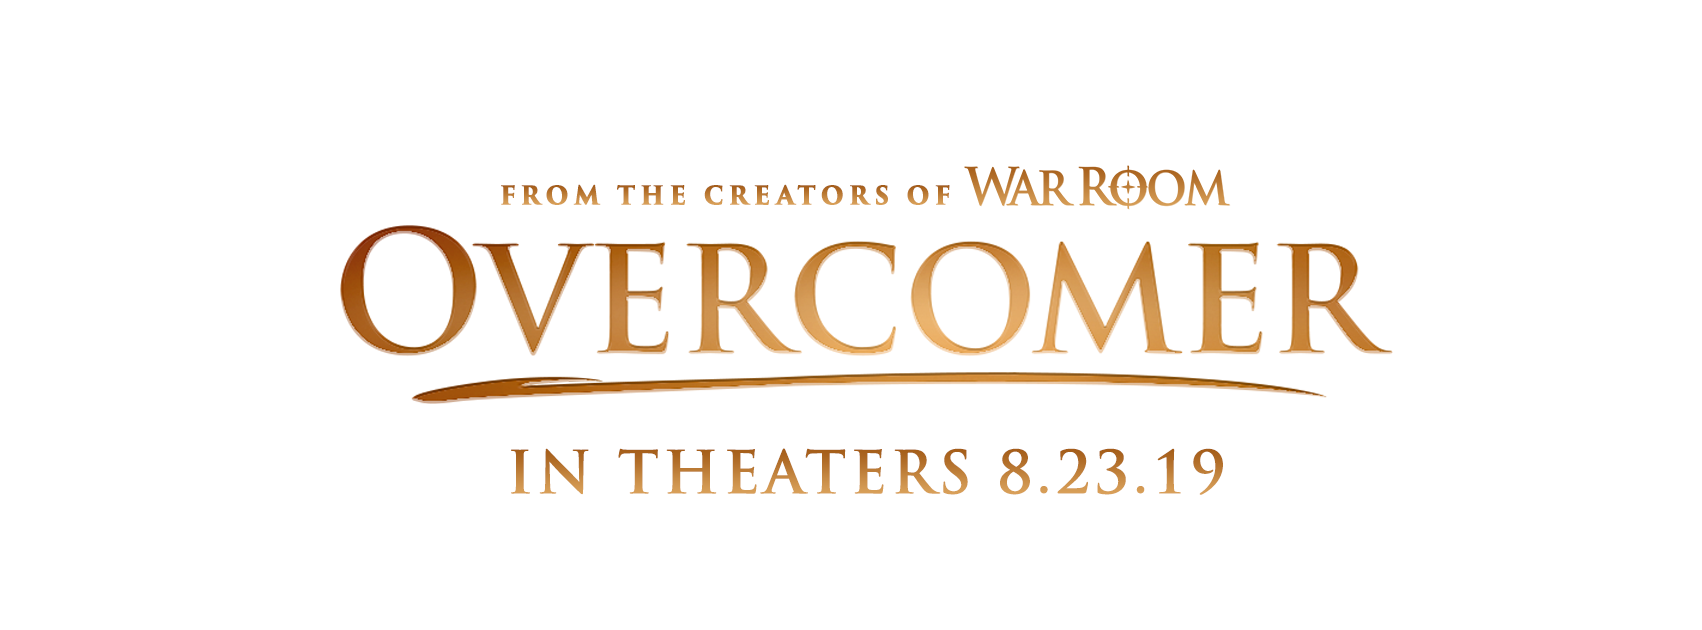 Kendrick Brothers' Release OVERCOMER Teaser Trailer